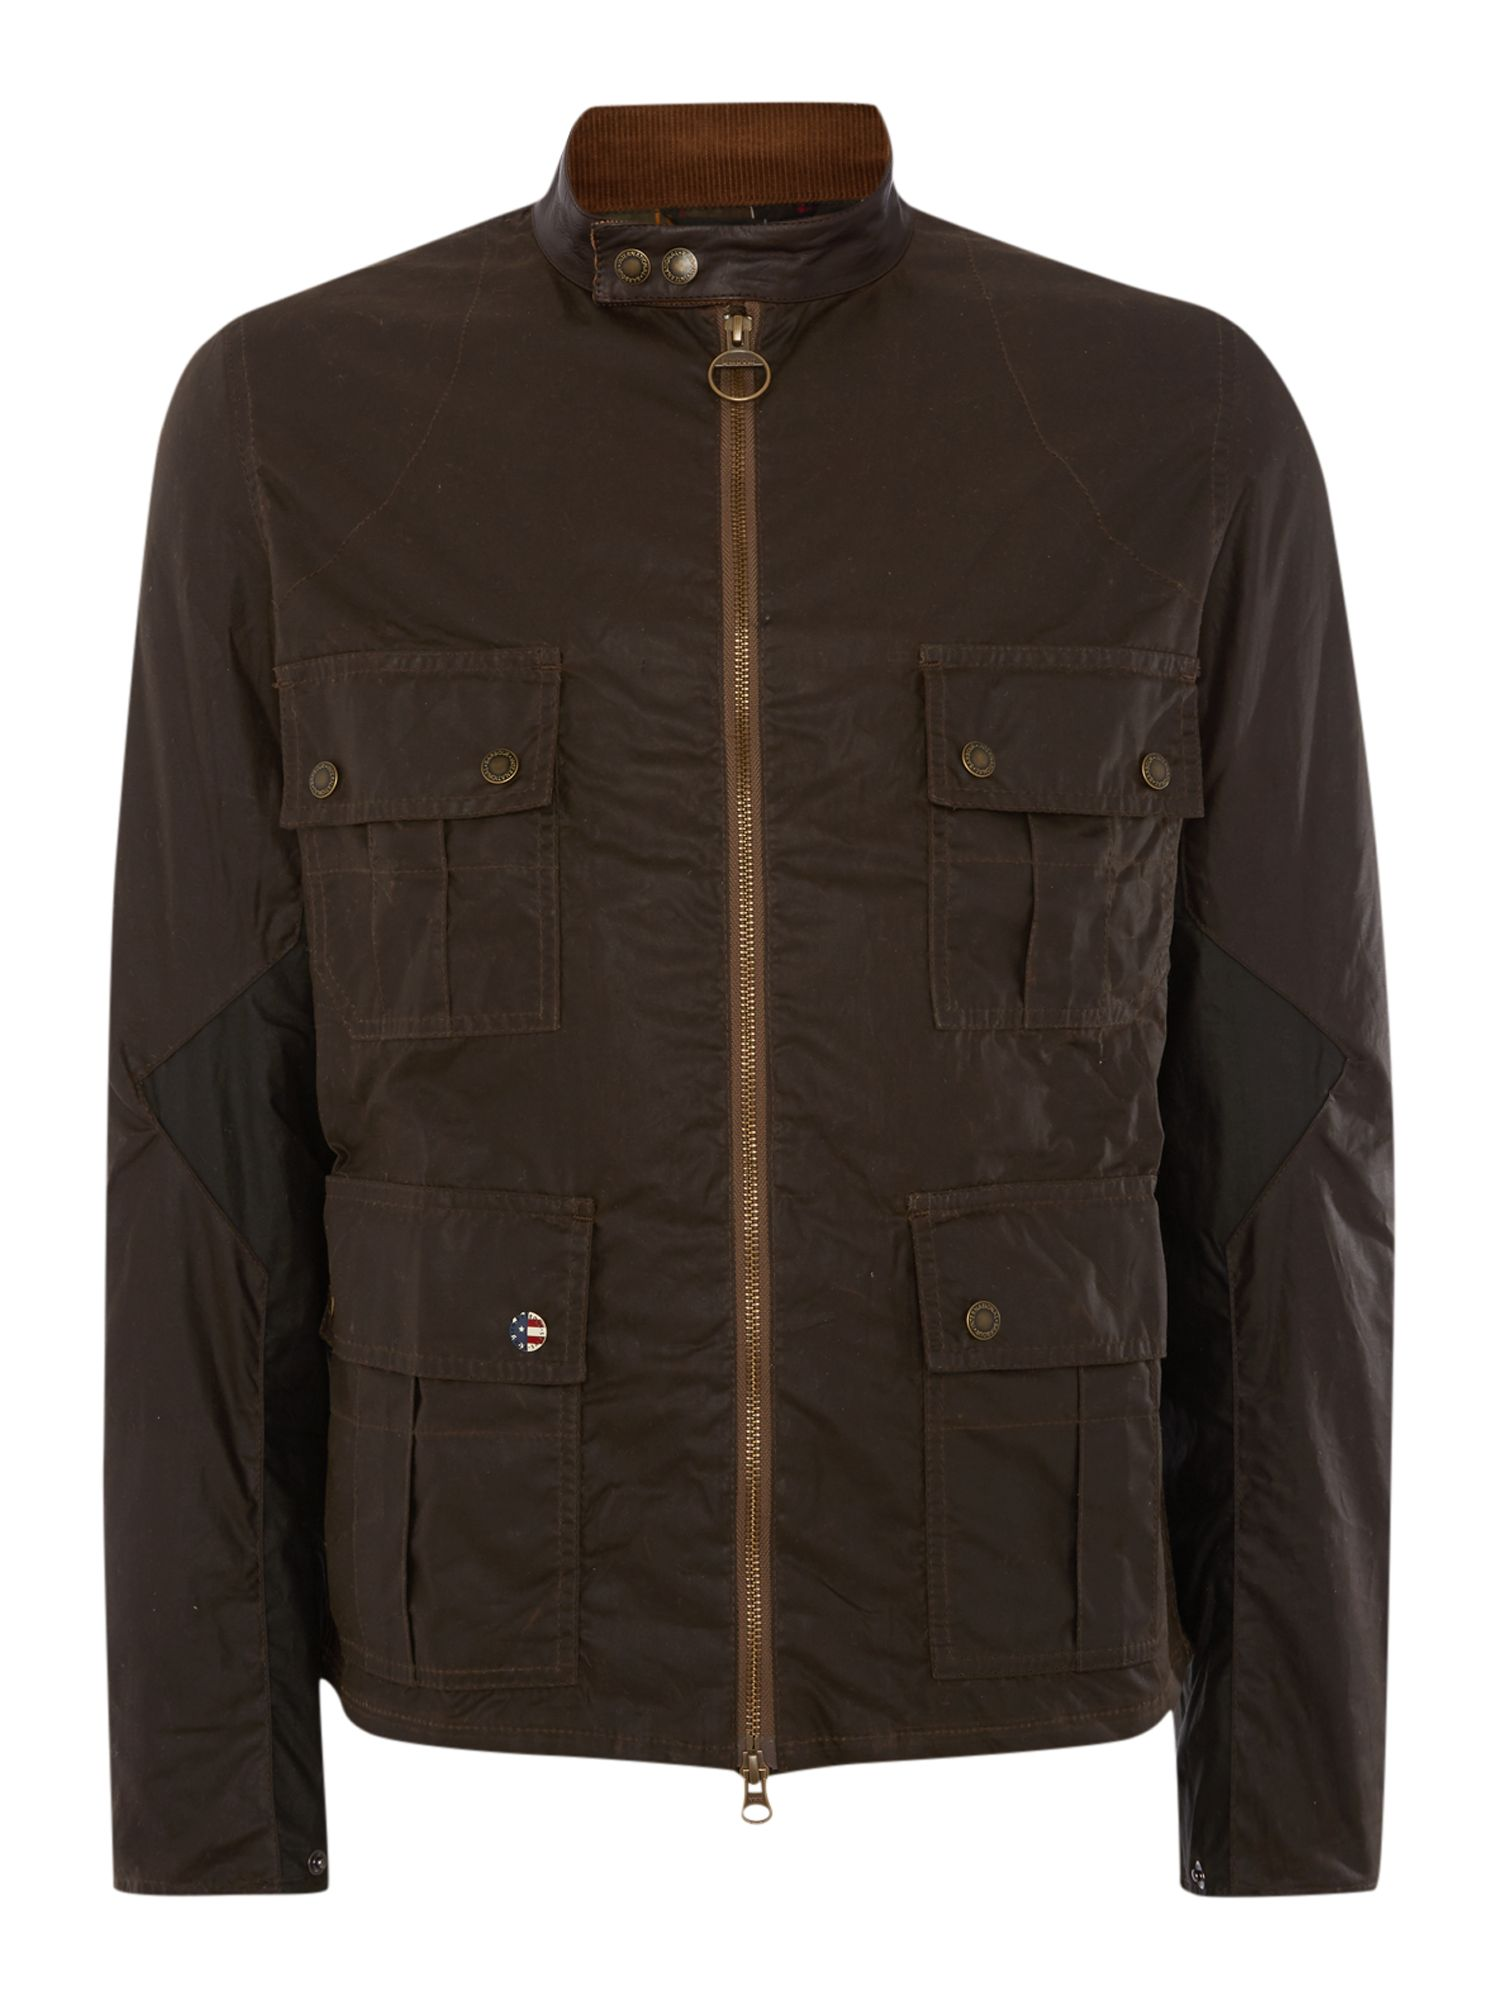 Mens Barbour Barbour Internation Chico Wax Jacket Olive